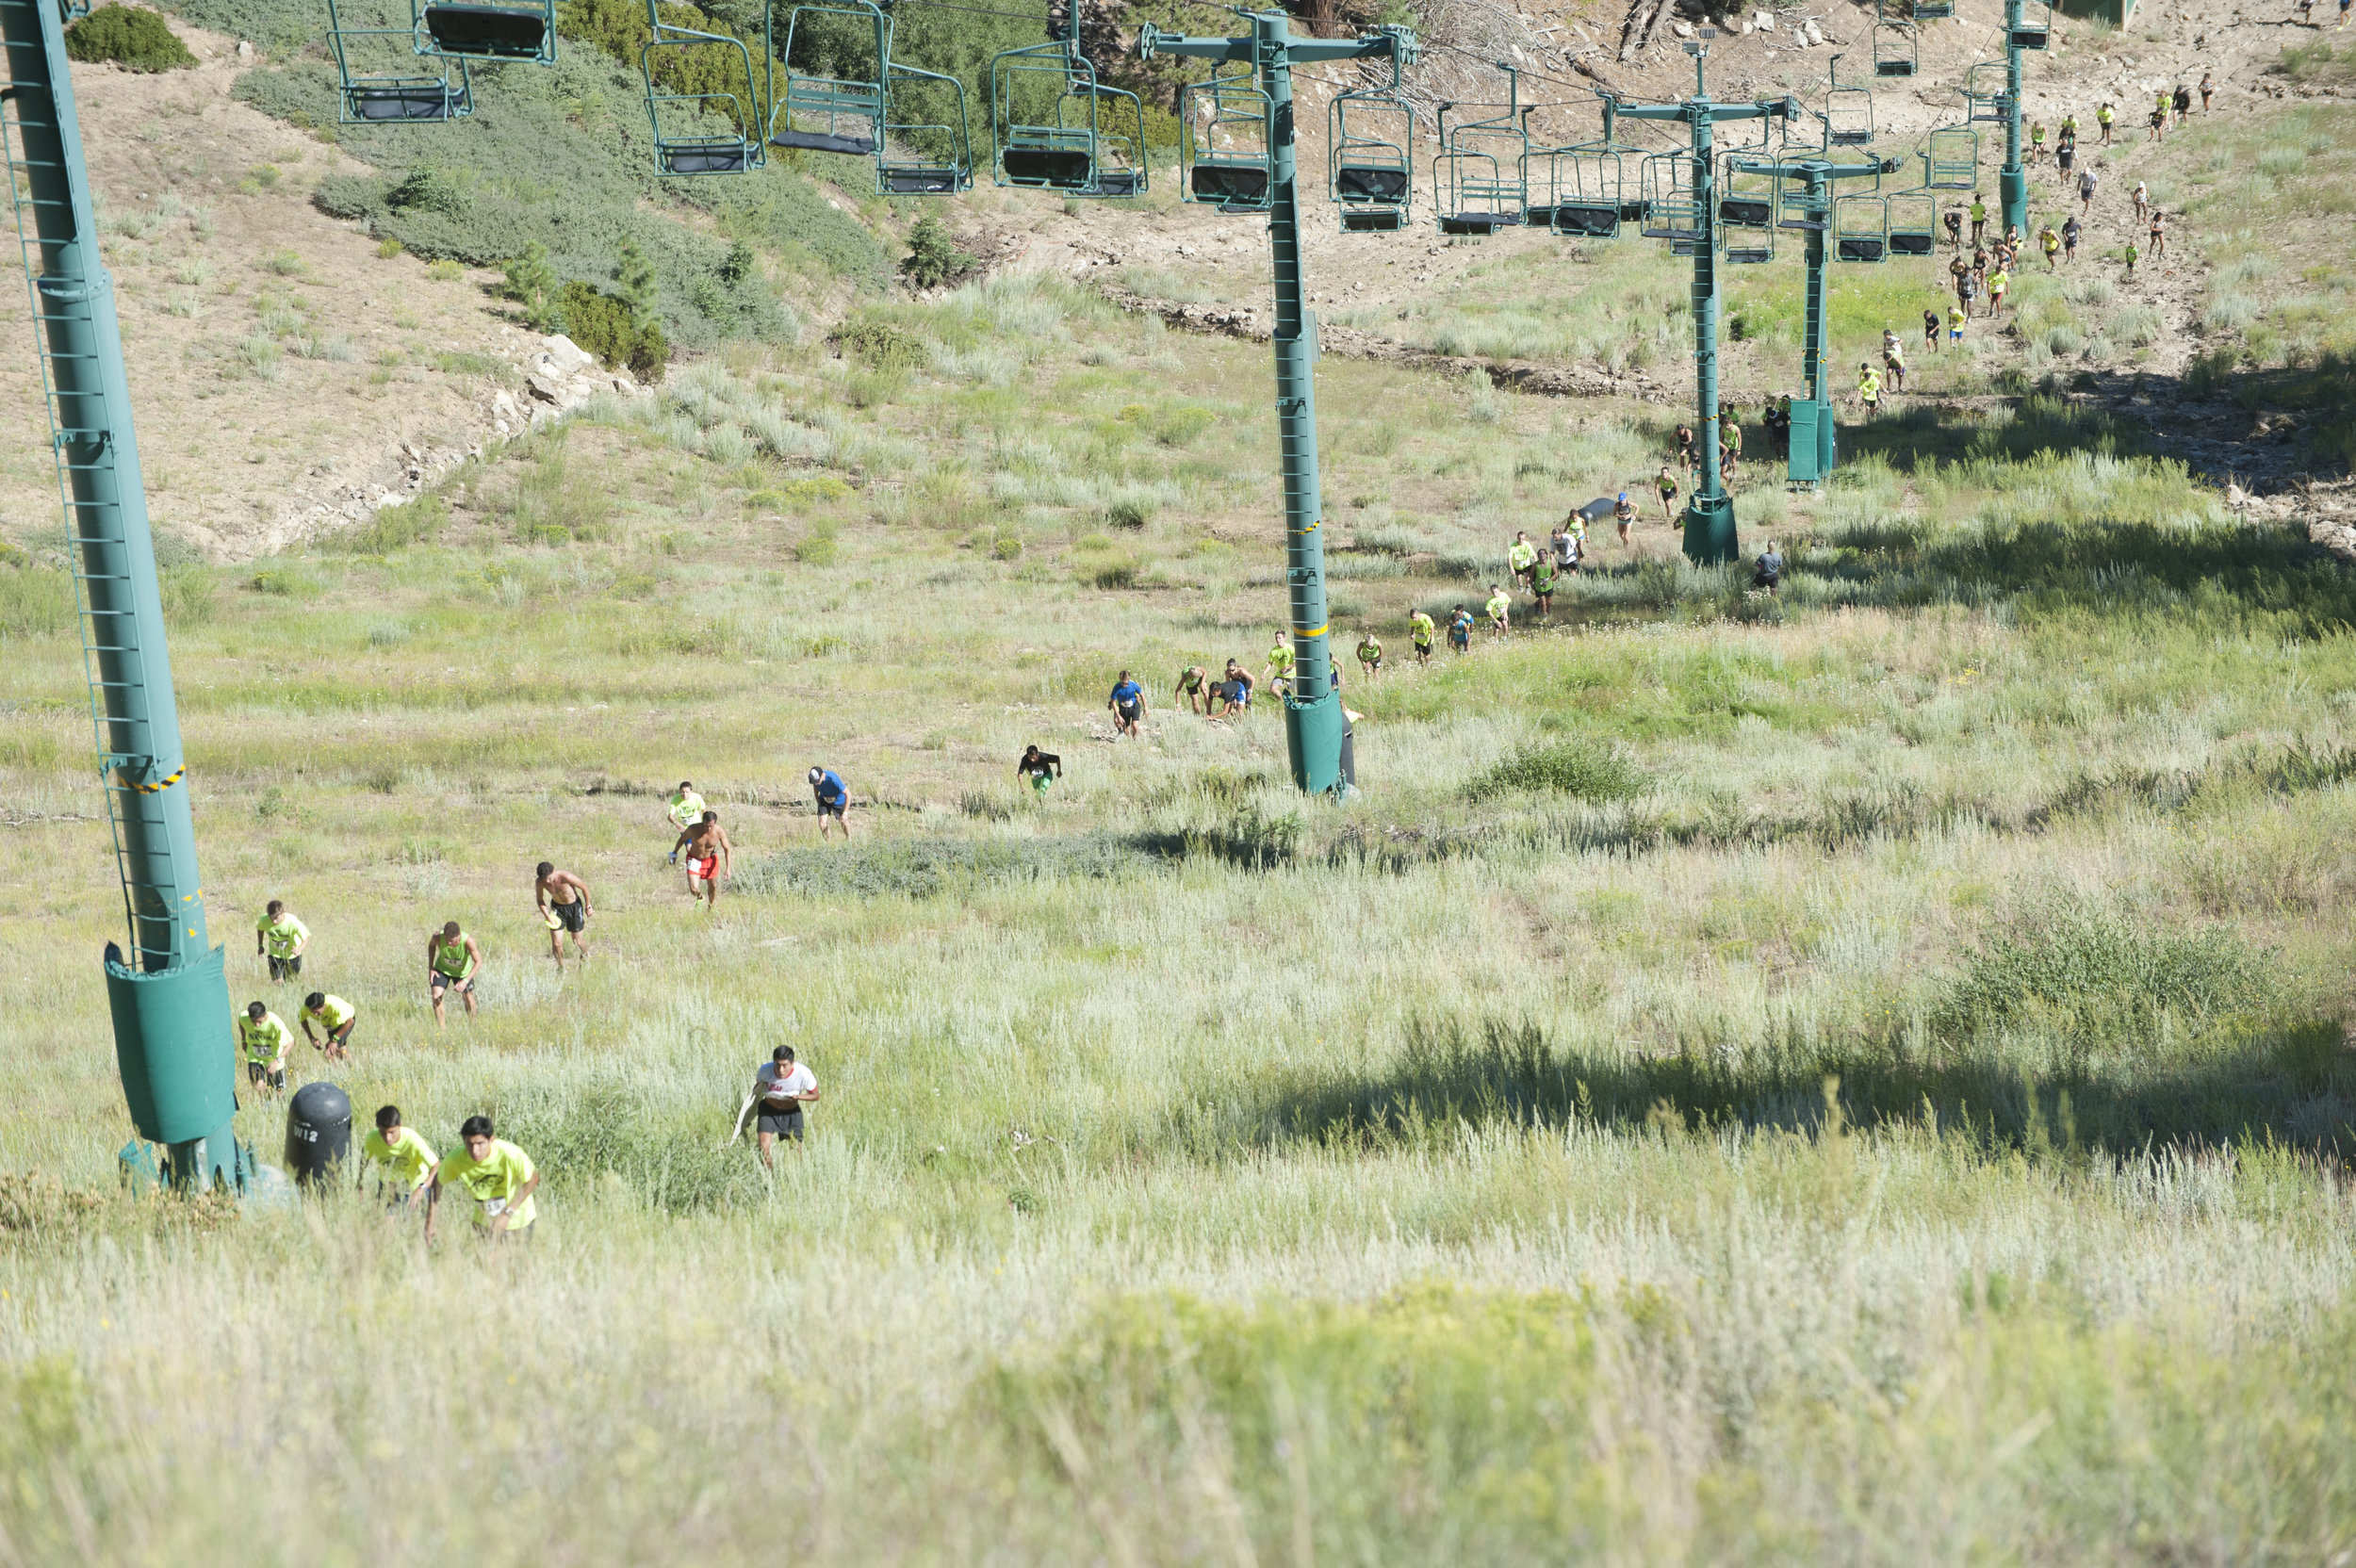 """Racers follow each other as they hike up """"The Wall"""" at Snow Summit ski resort July 29, 2017. The first-ever """"Conquer the Wall"""" race had 167 runners compete."""